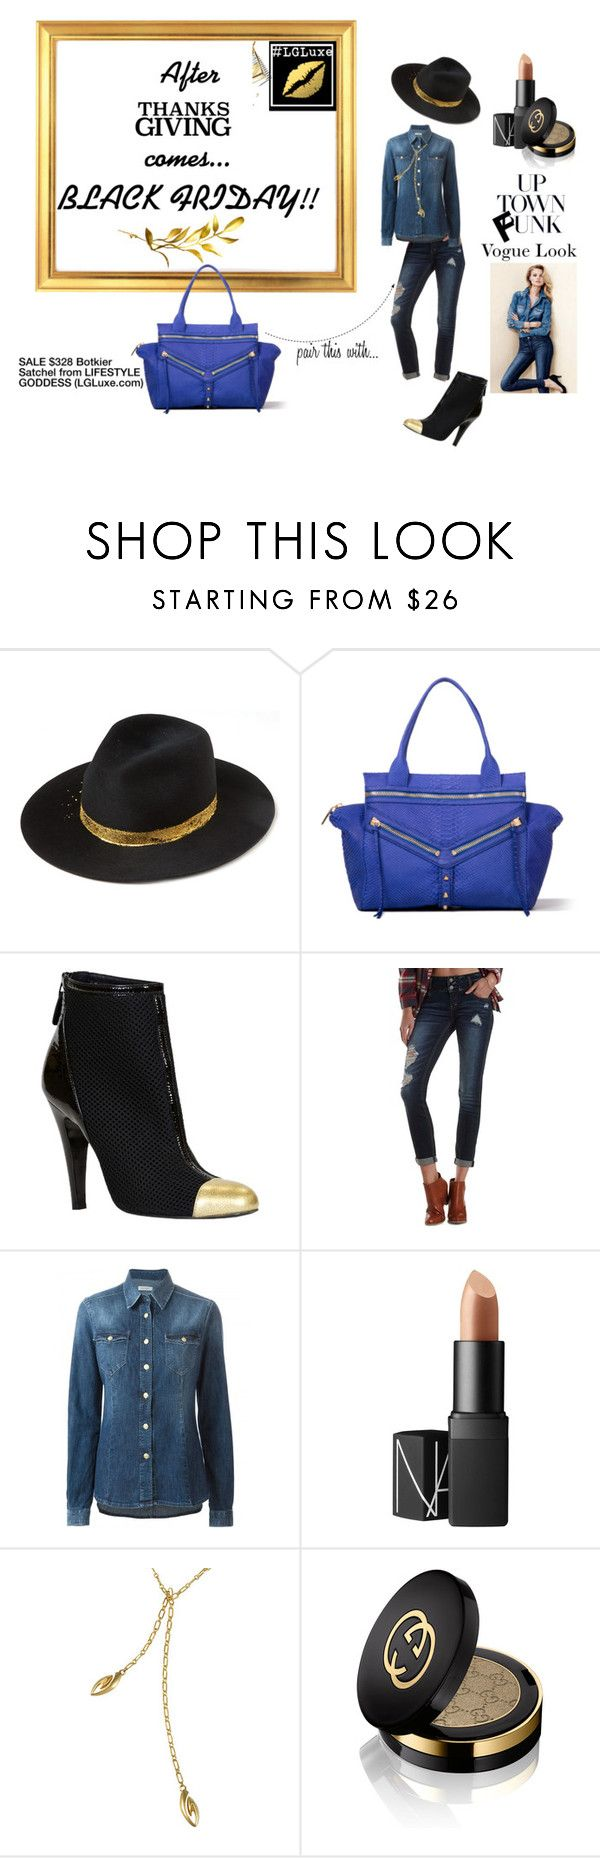 """Black Friday Sale at Lifestyle Goddess"" by lifestylegoddess ❤ liked on Polyvore featuring Eugenia Kim, Botkier, Chanel, Charlotte Russe, H&M, NARS Cosmetics, Realm and Gucci"